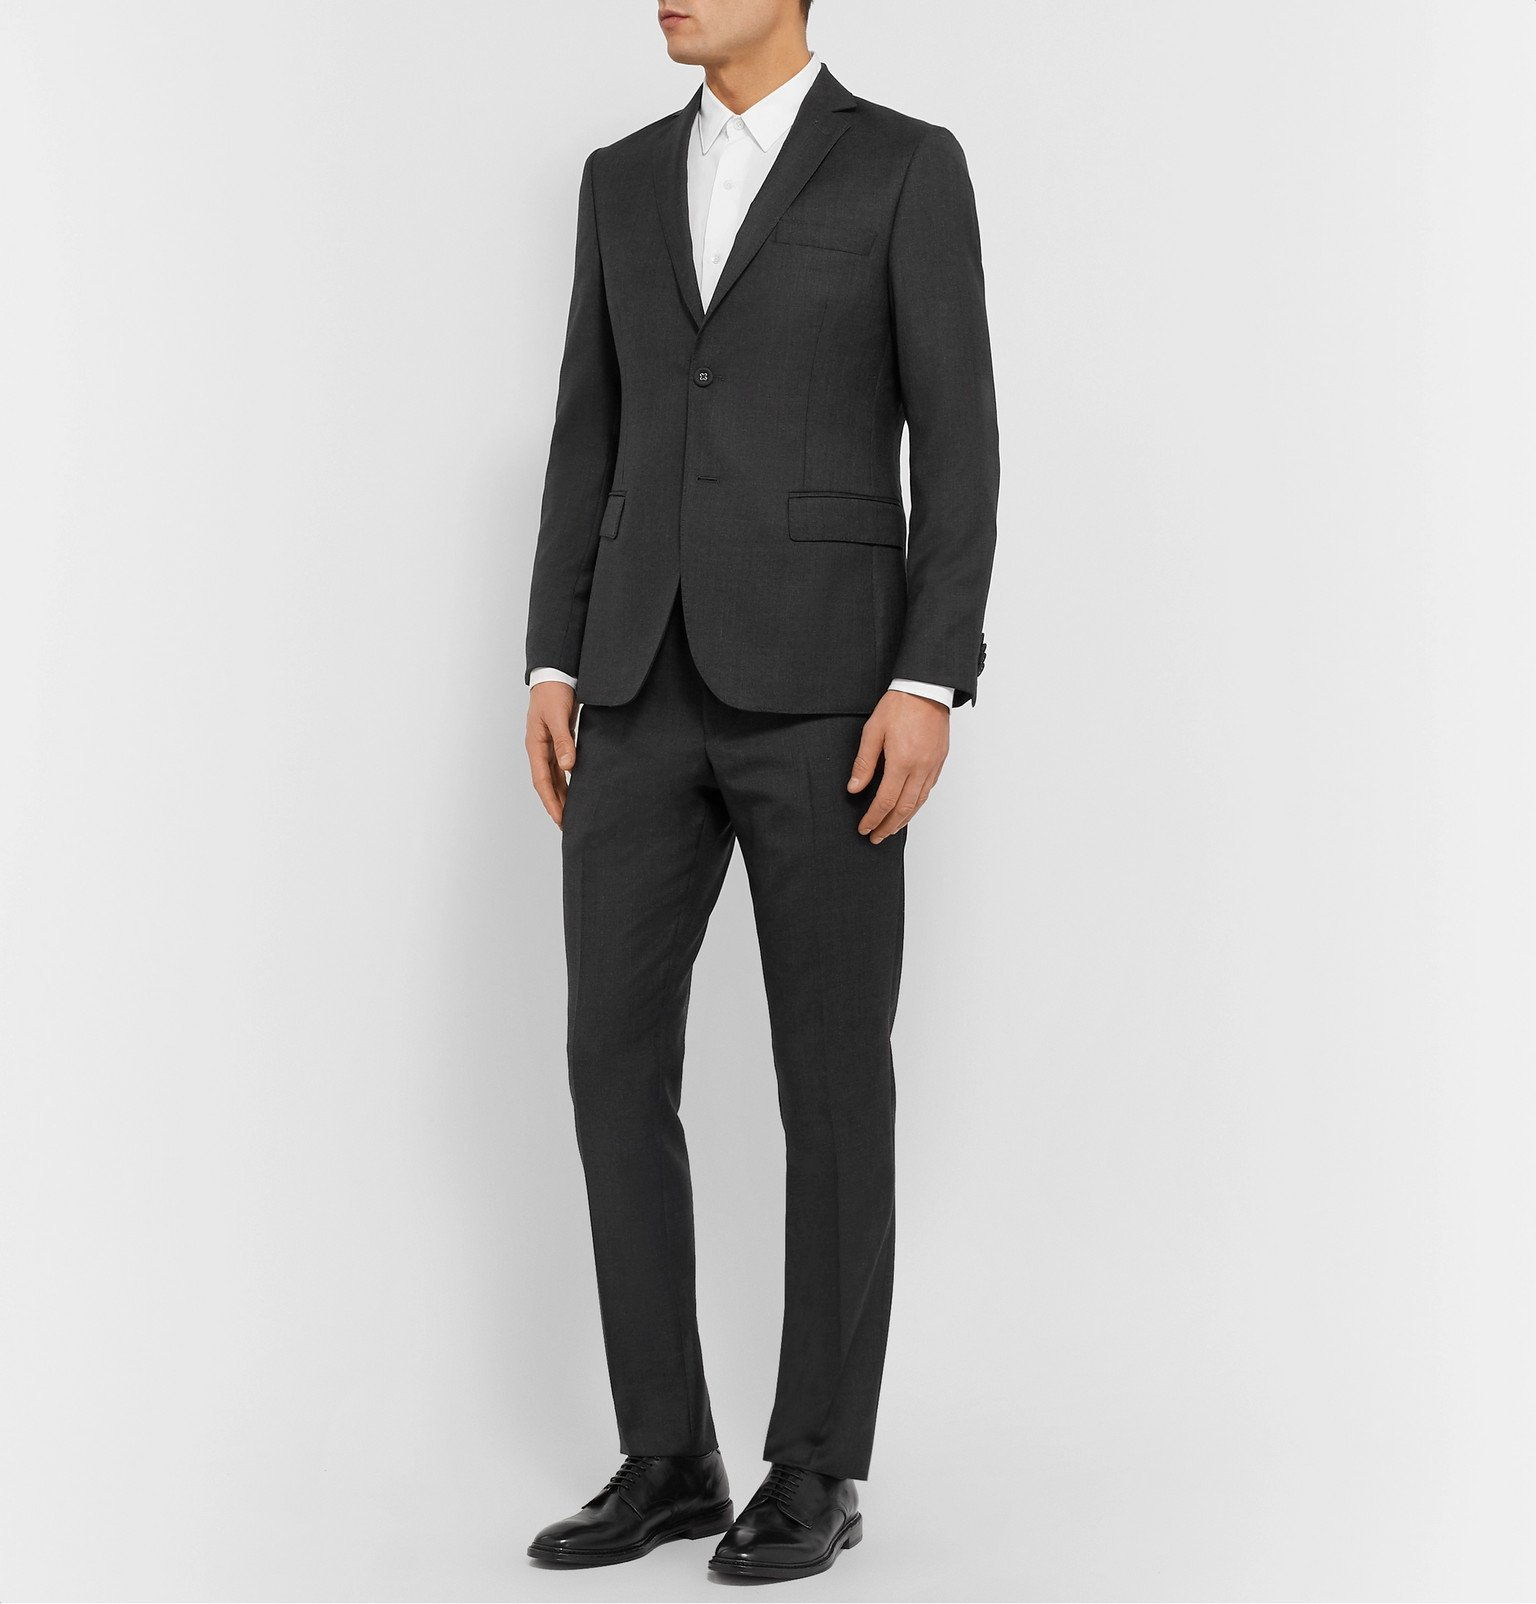 Officine Generale - Charcoal Slim-Fit Wool Suit Jacket - Gray